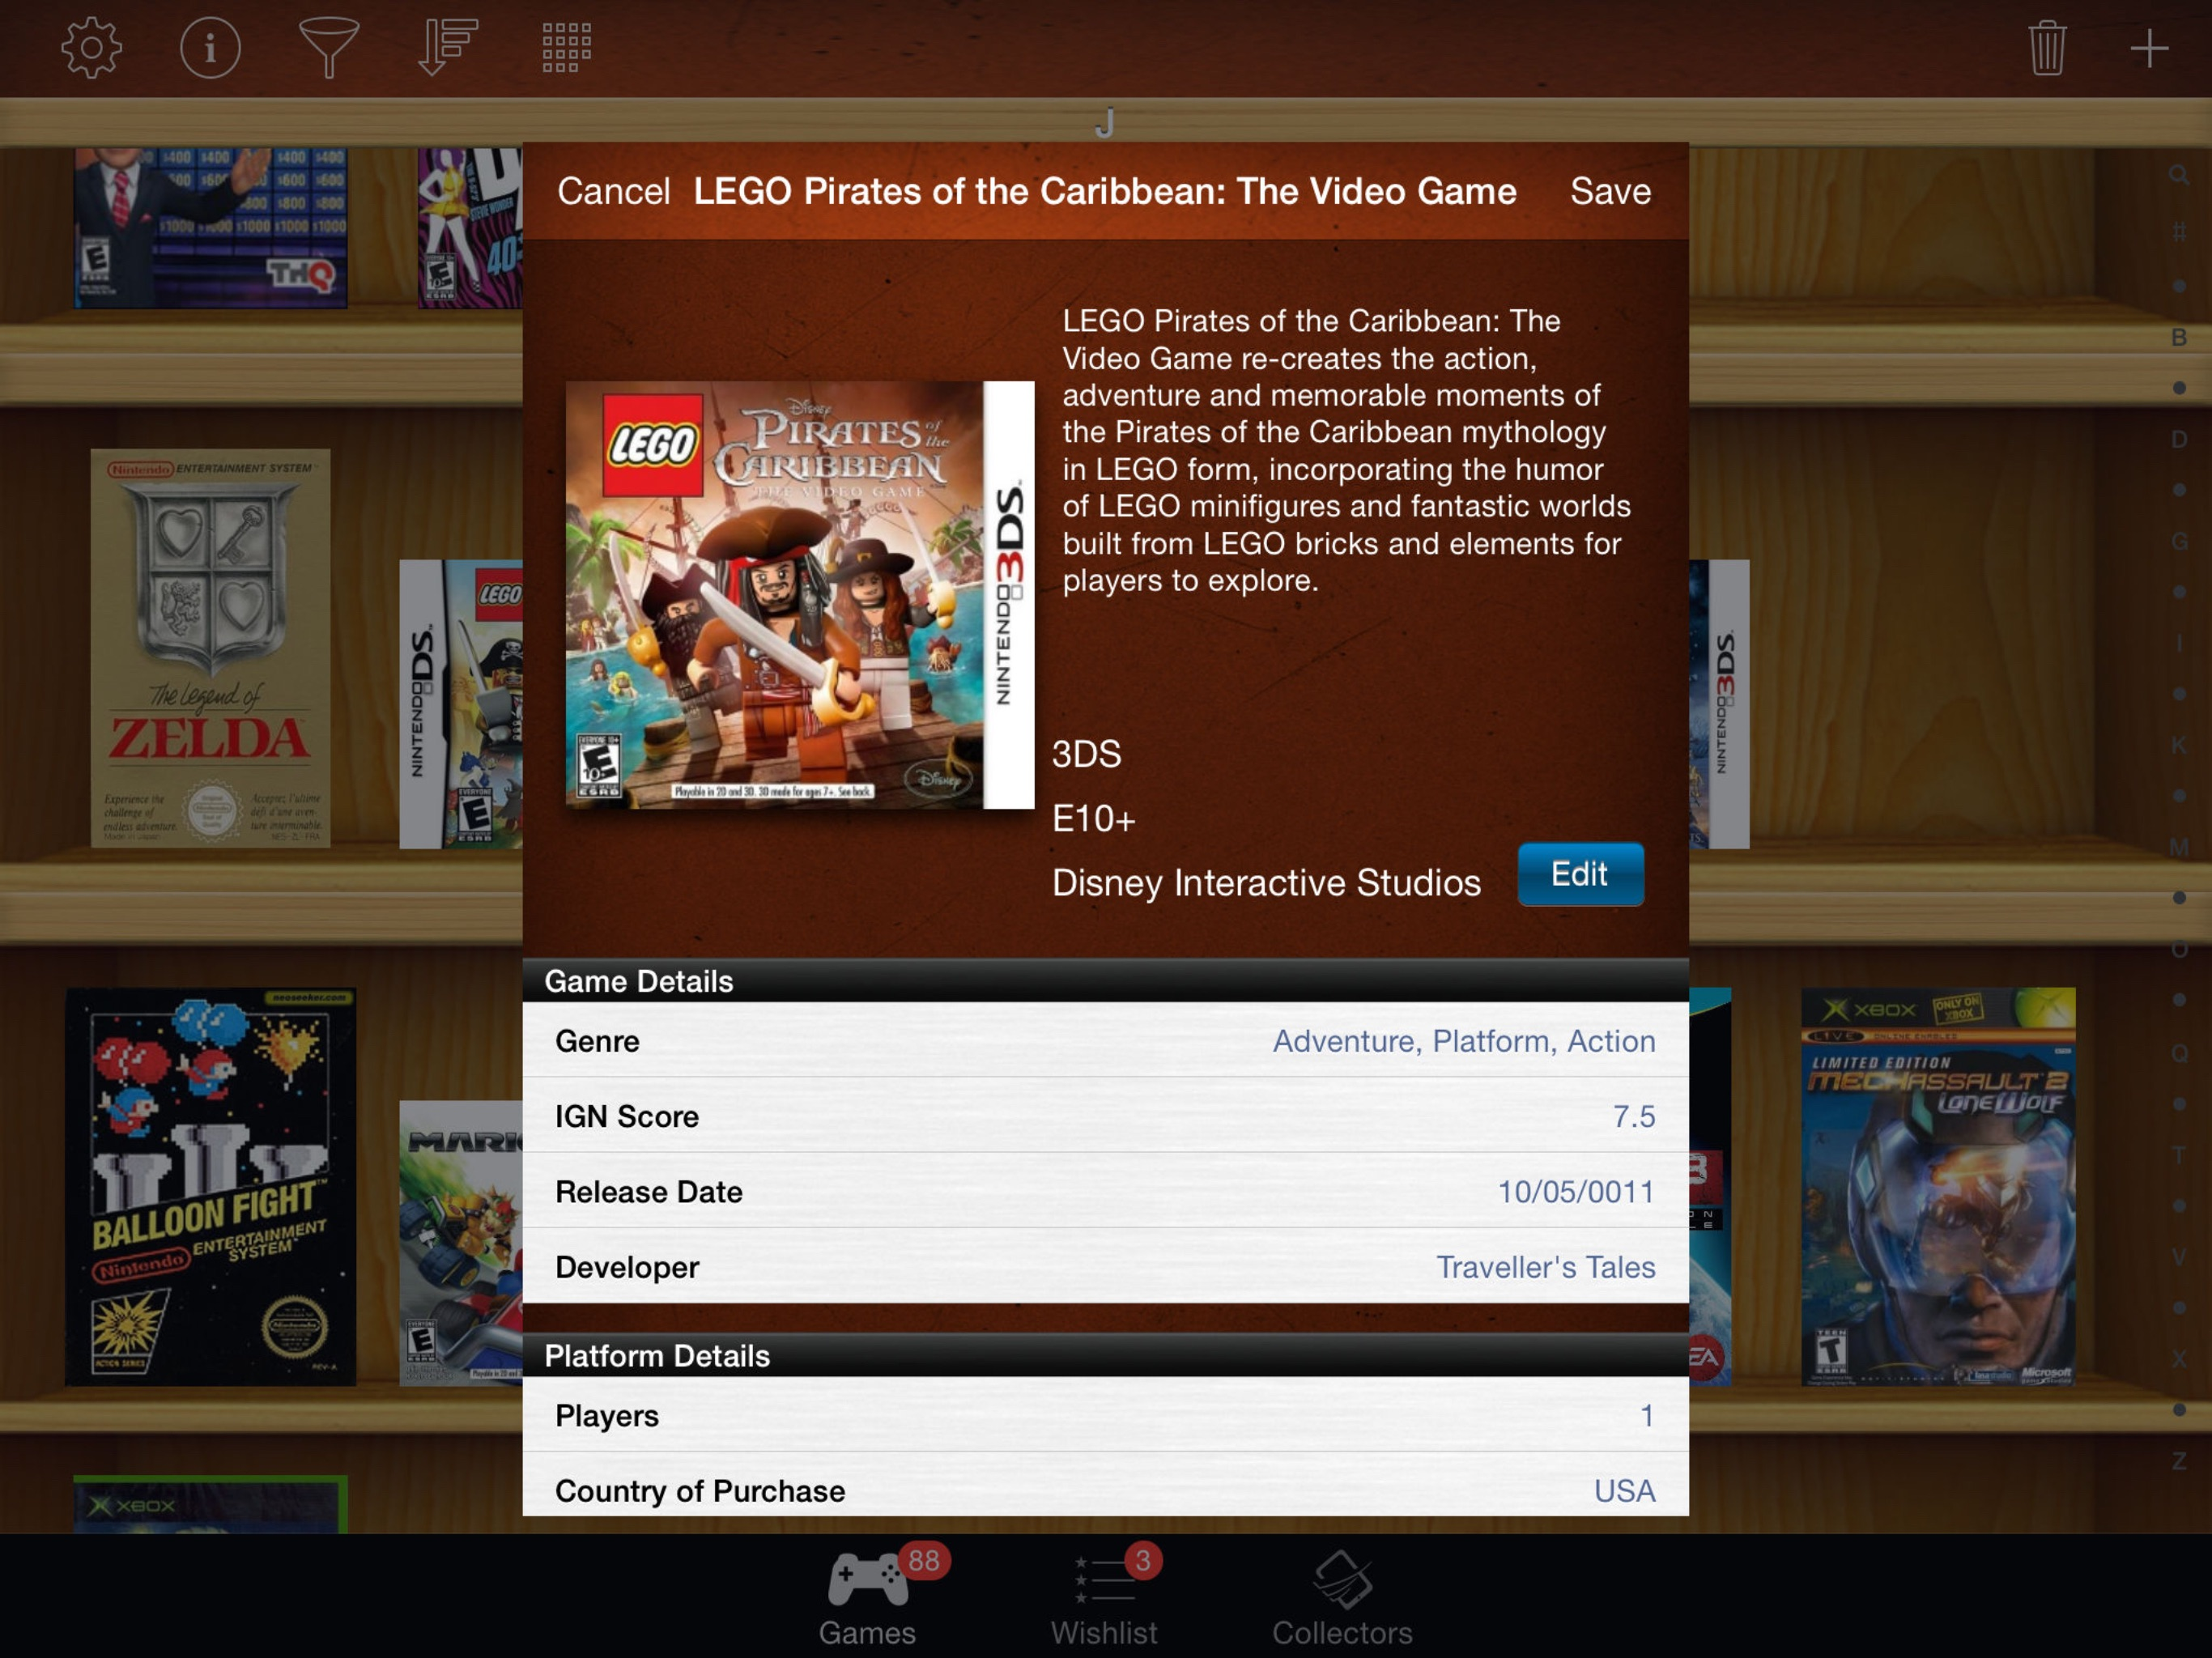 Collectors: Movies Games Books Comics Music - iPad Screenshot